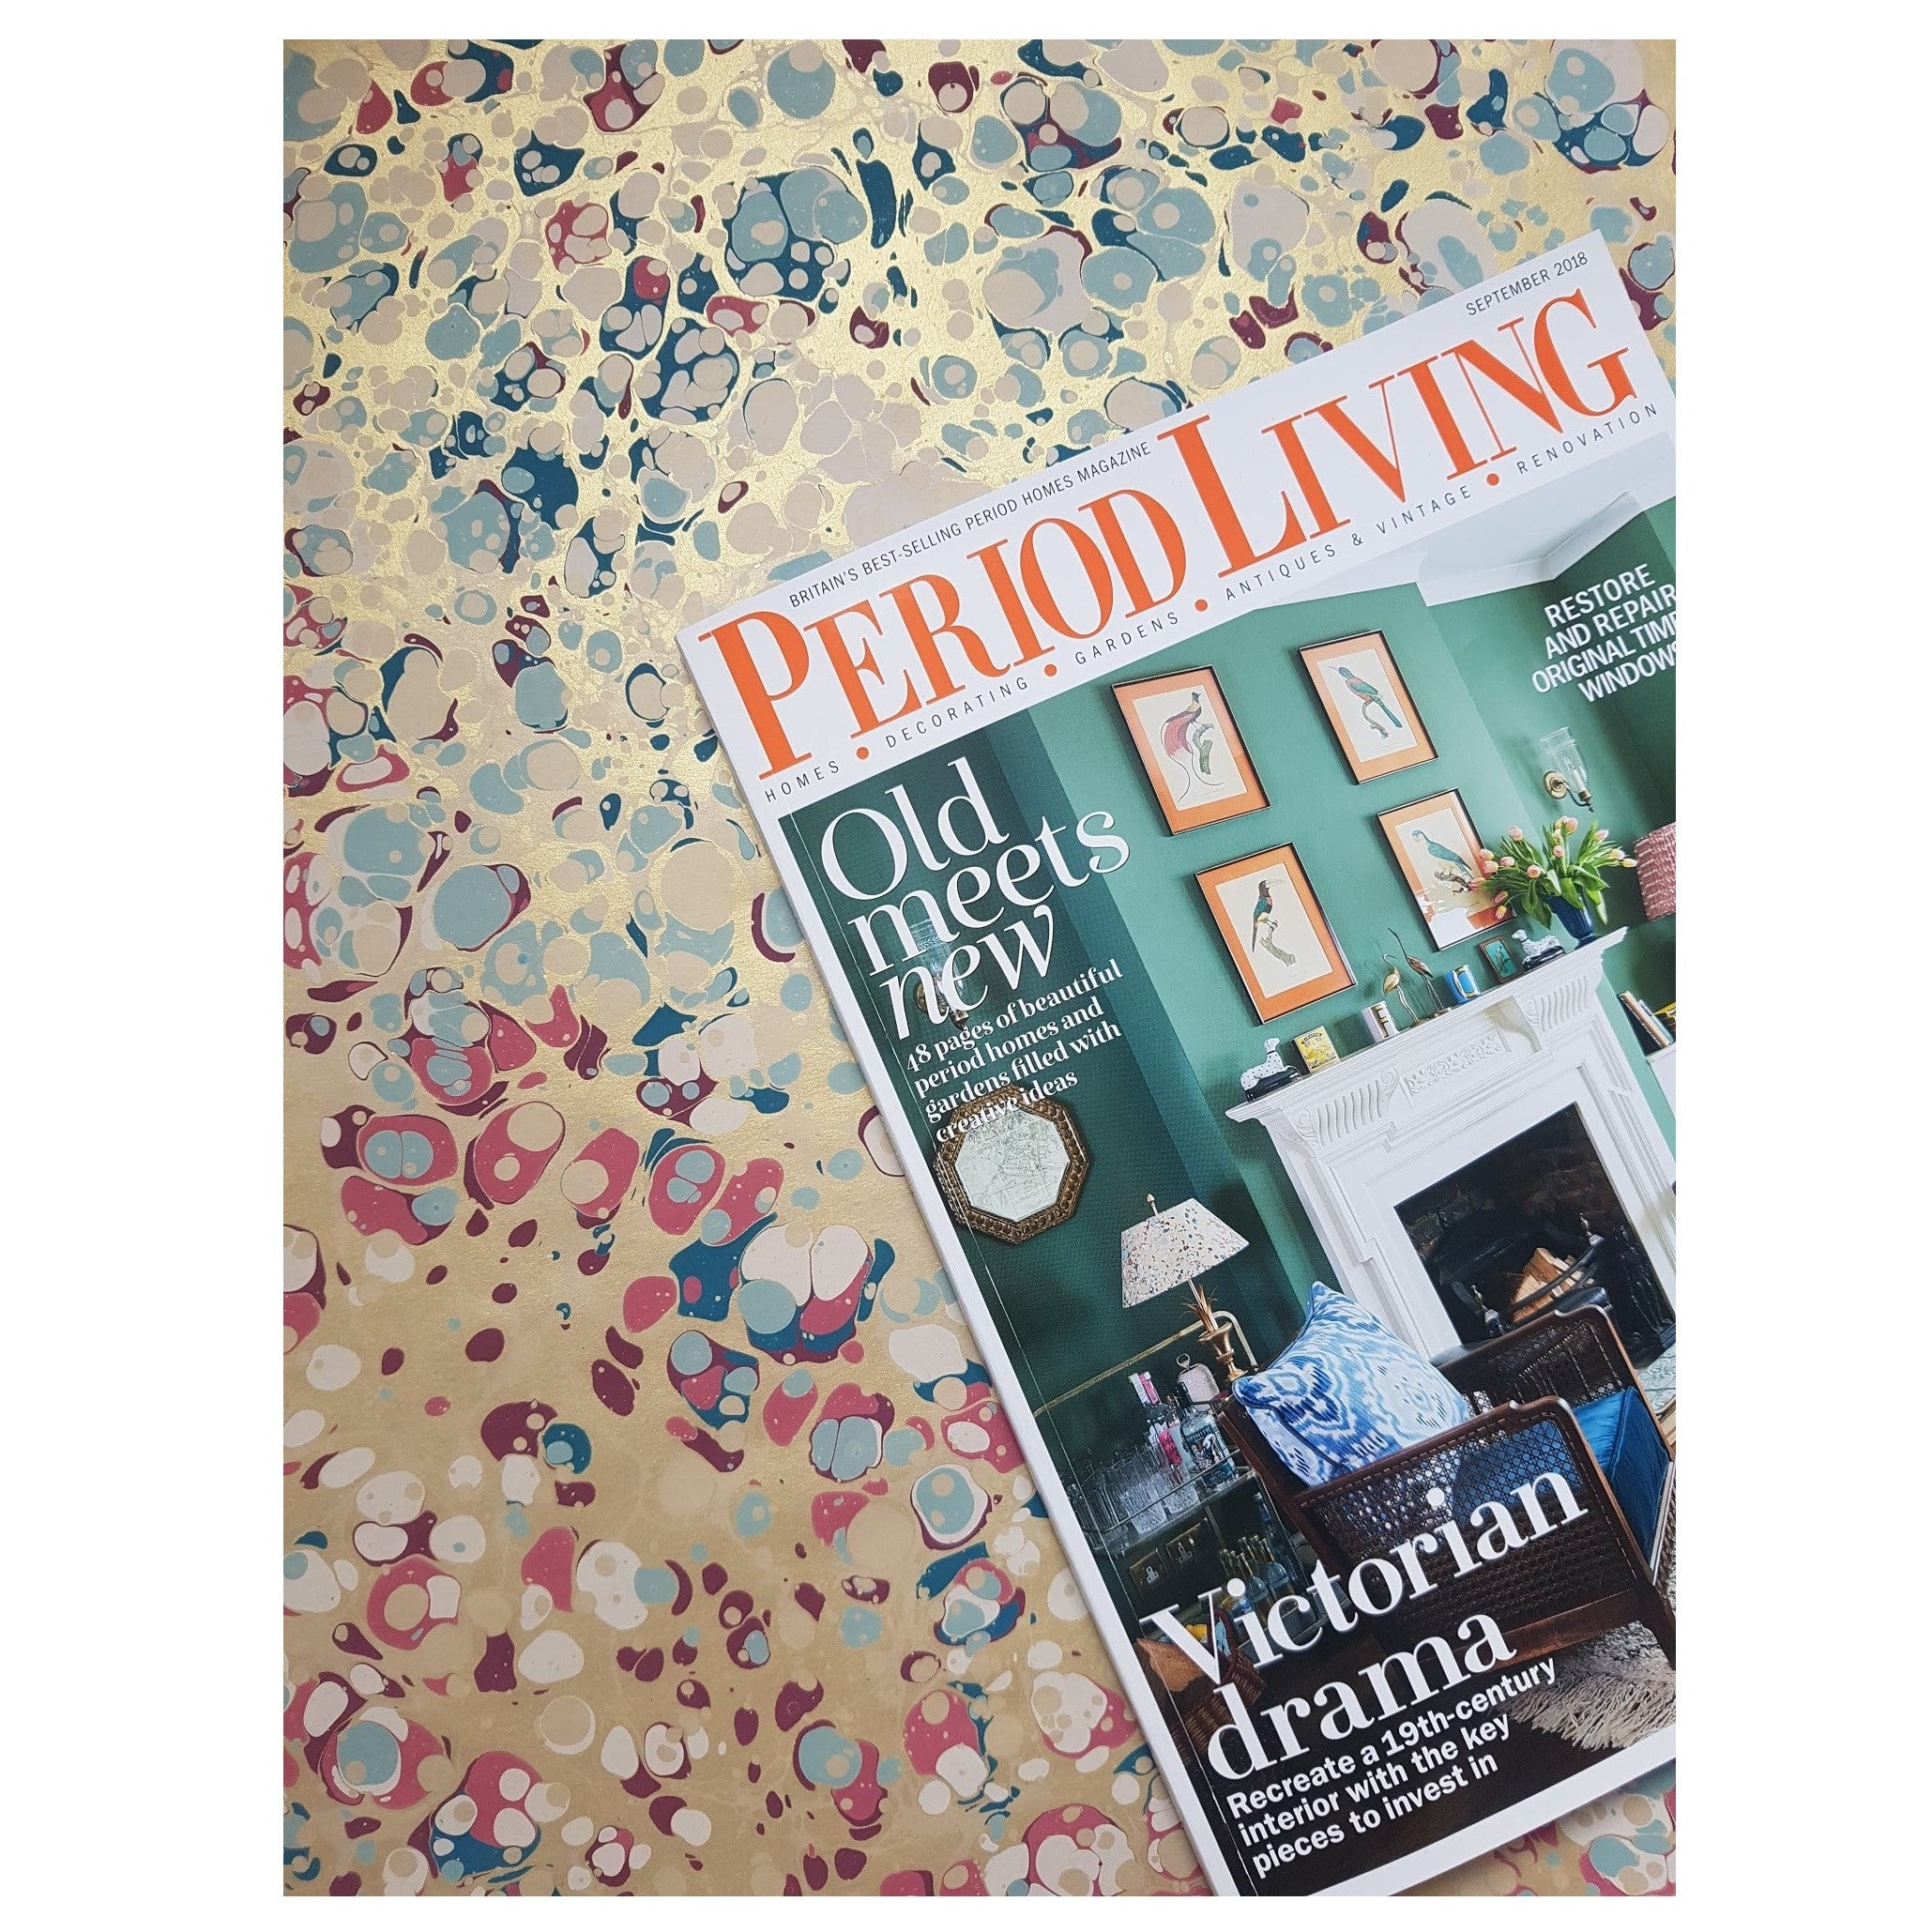 Munro and Kerr metallic marbled lampshade in Rococo London Interiors Period Living magazine